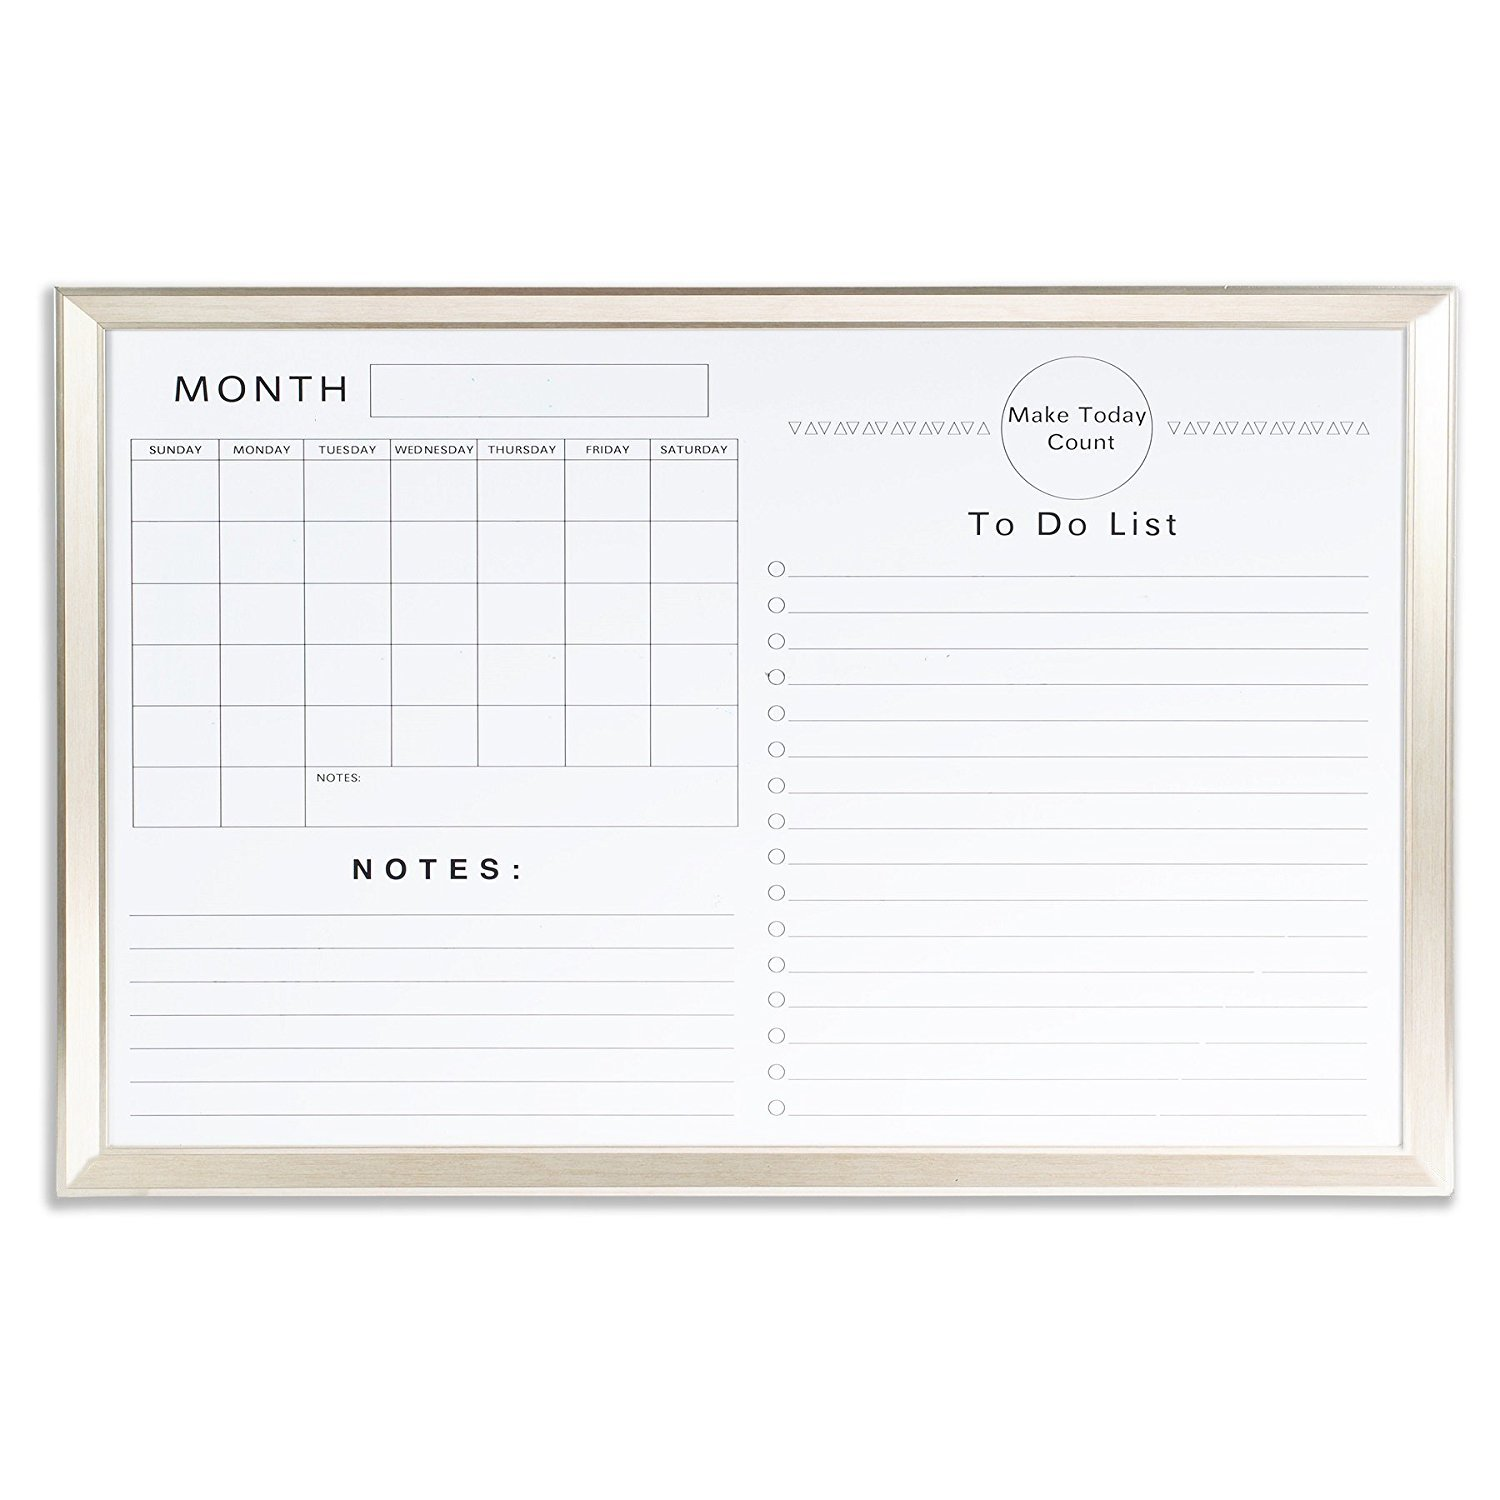 VISTA 24 x 36 Inches Calendar Whiteboard Magnetic Dry Erase White Board for Monthly Planning